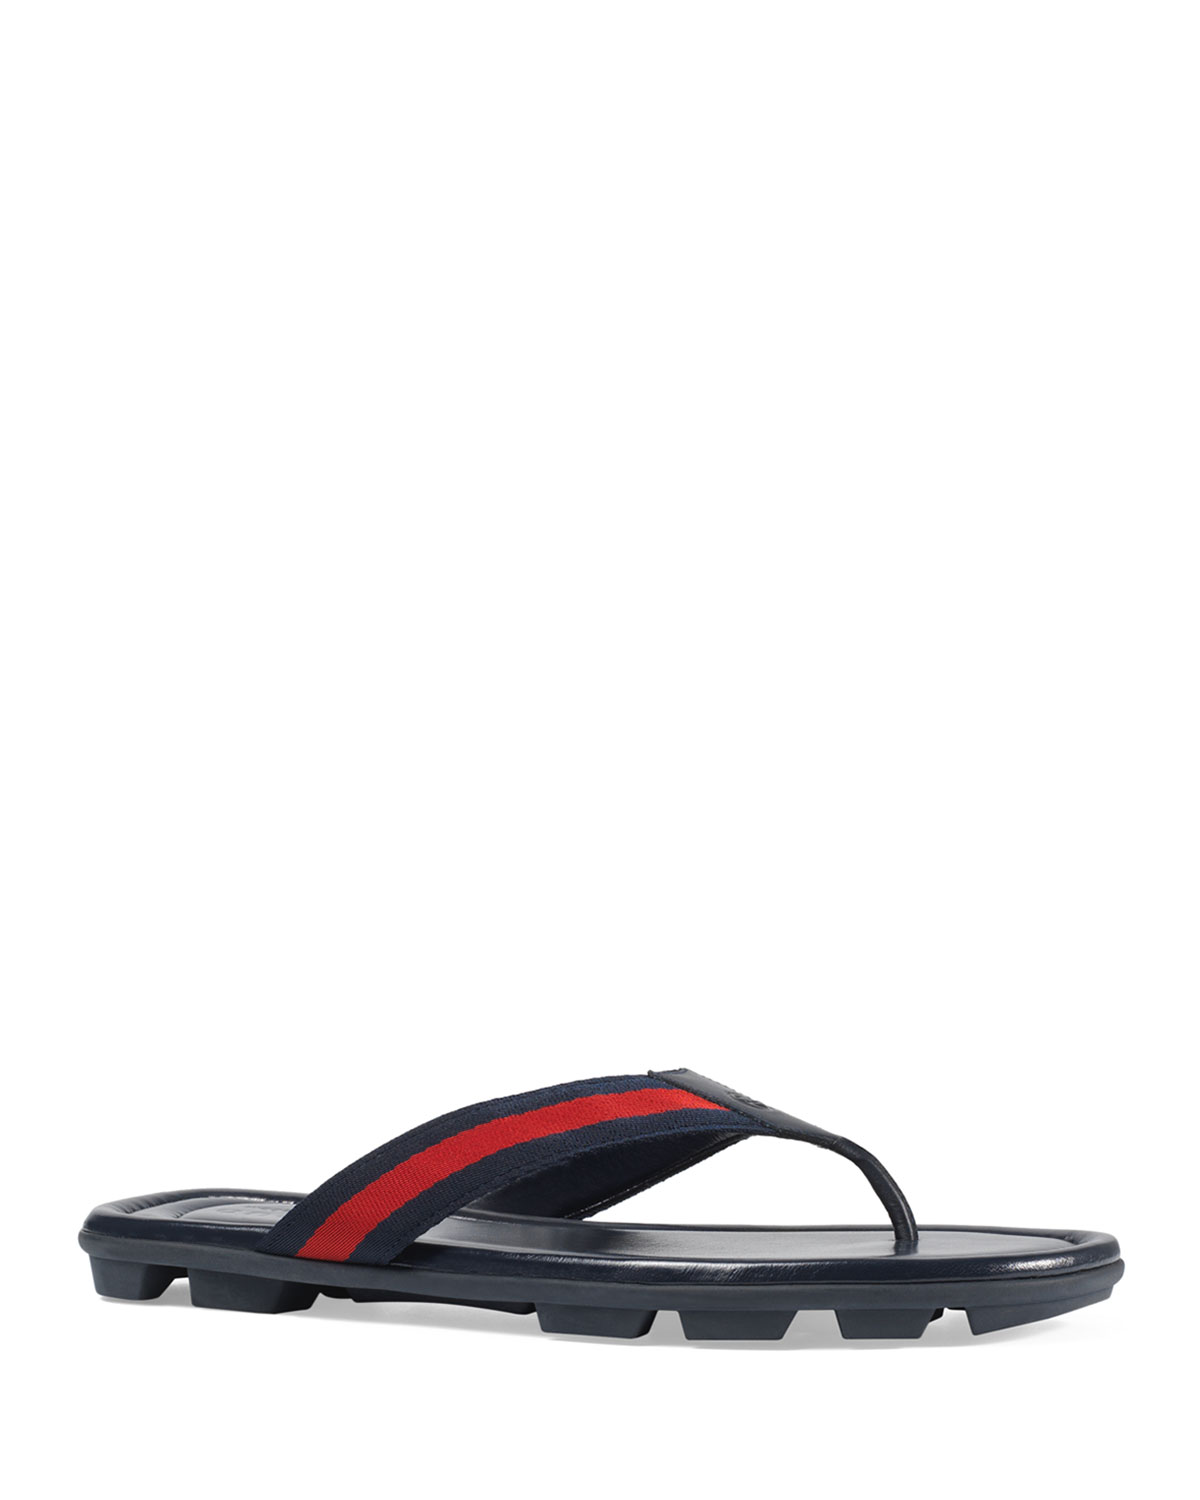 66f471384 Gucci Web & Leather Thong Sandals | Neiman Marcus